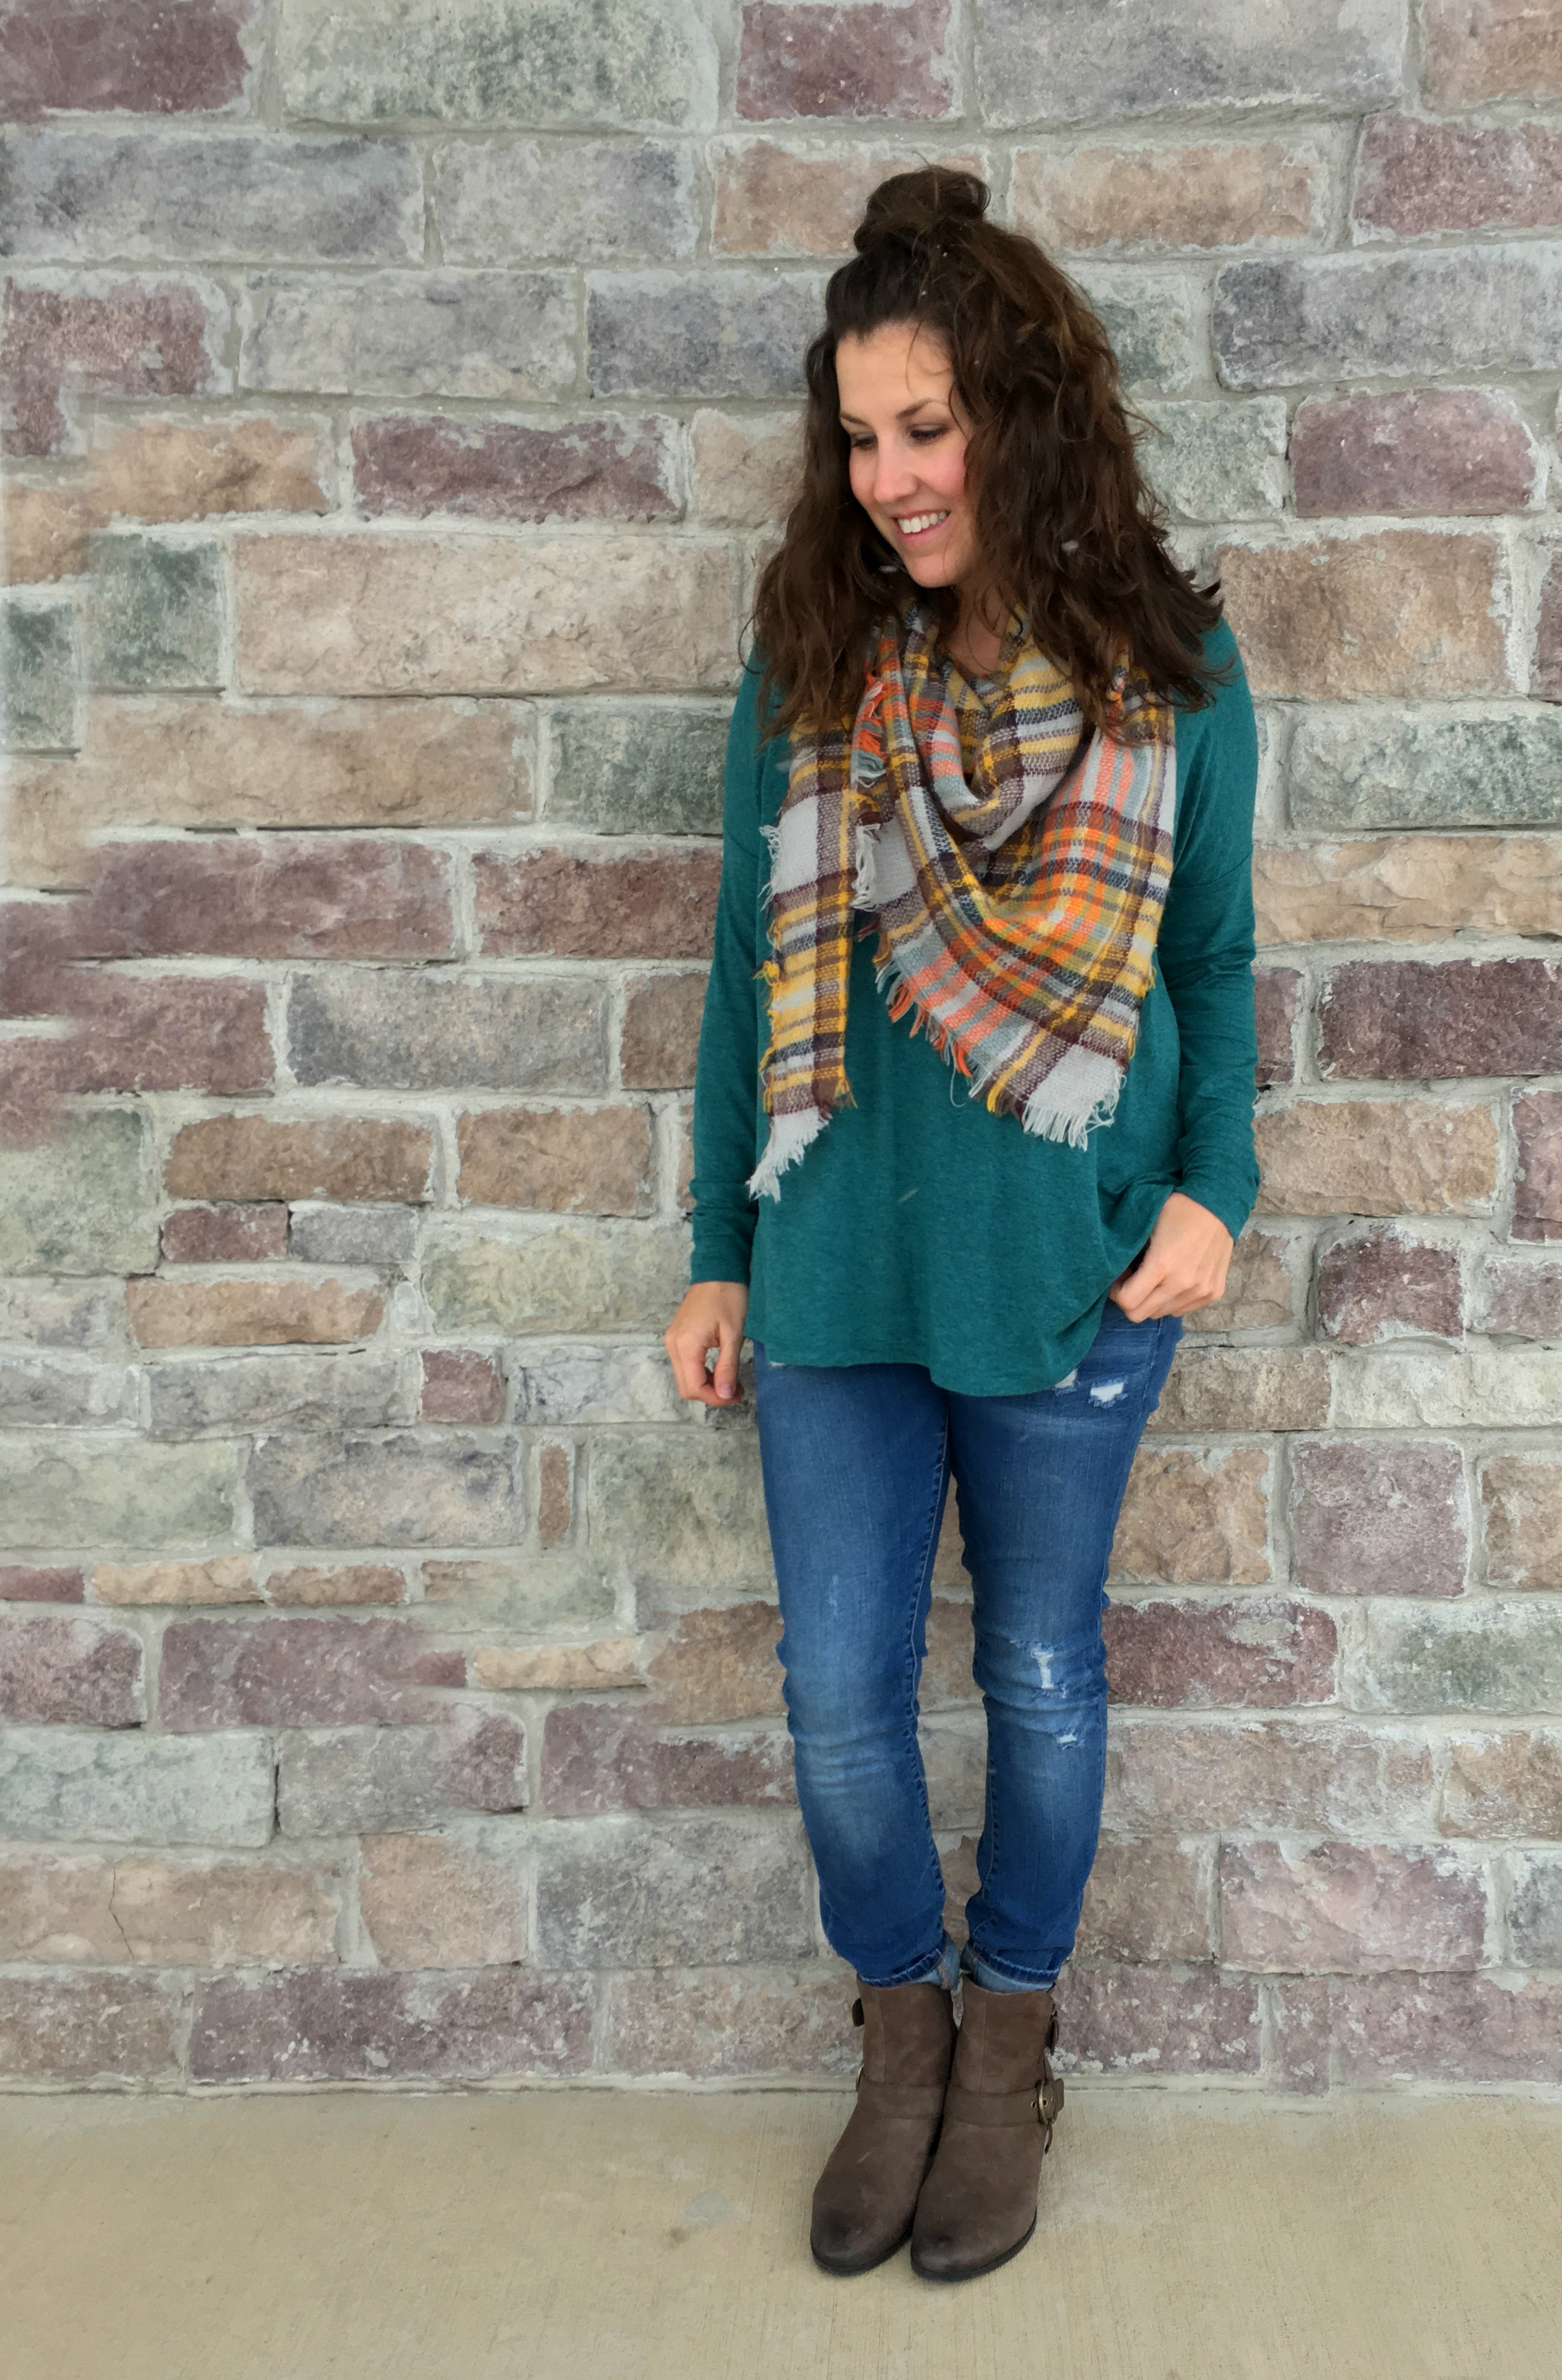 Earth Brand Brown Ankle Boots - Five Outfit Ideas + Giveaway - momma in flip flops